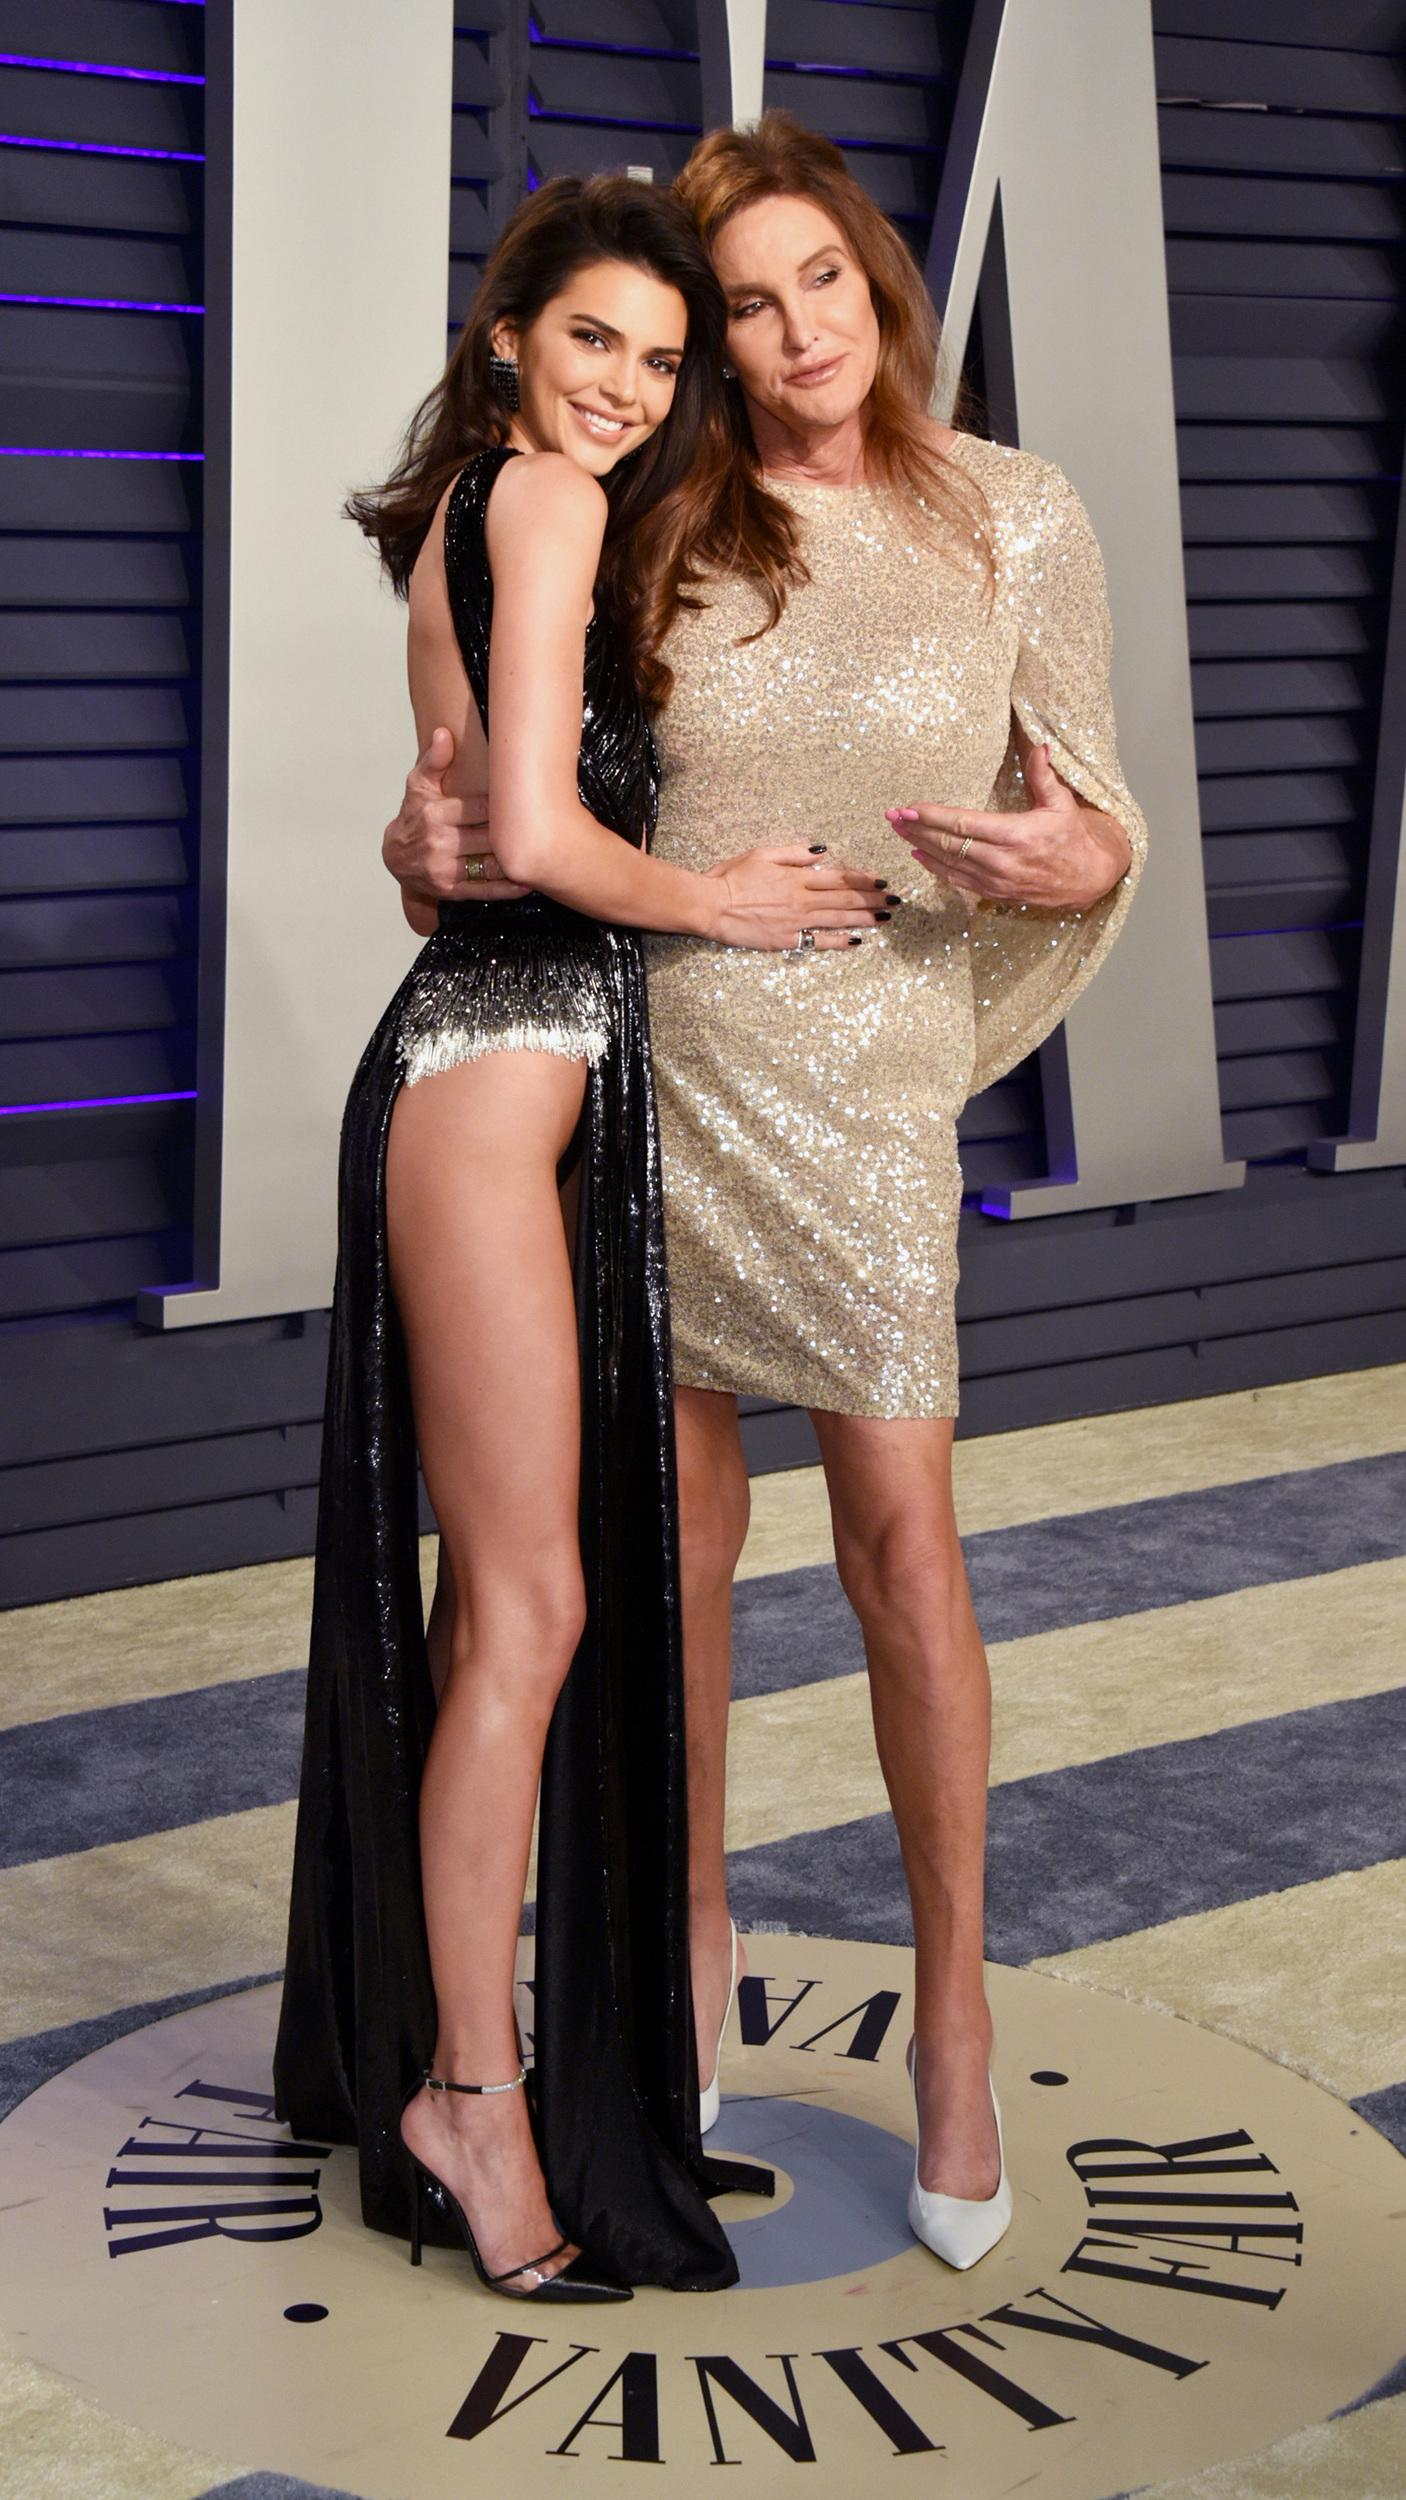 BEVERLY HILLS, CA - FEBRUARY 24:  Kendall Jenner (L) and Caitlyn Jenner attend the 2019 Vanity Fair Oscar Party hosted by Radhika Jones at Wallis Annenberg Center for the Performing Arts on February 24, 2019 in Beverly Hills, California.  (Photo by John Shearer/Getty Images)